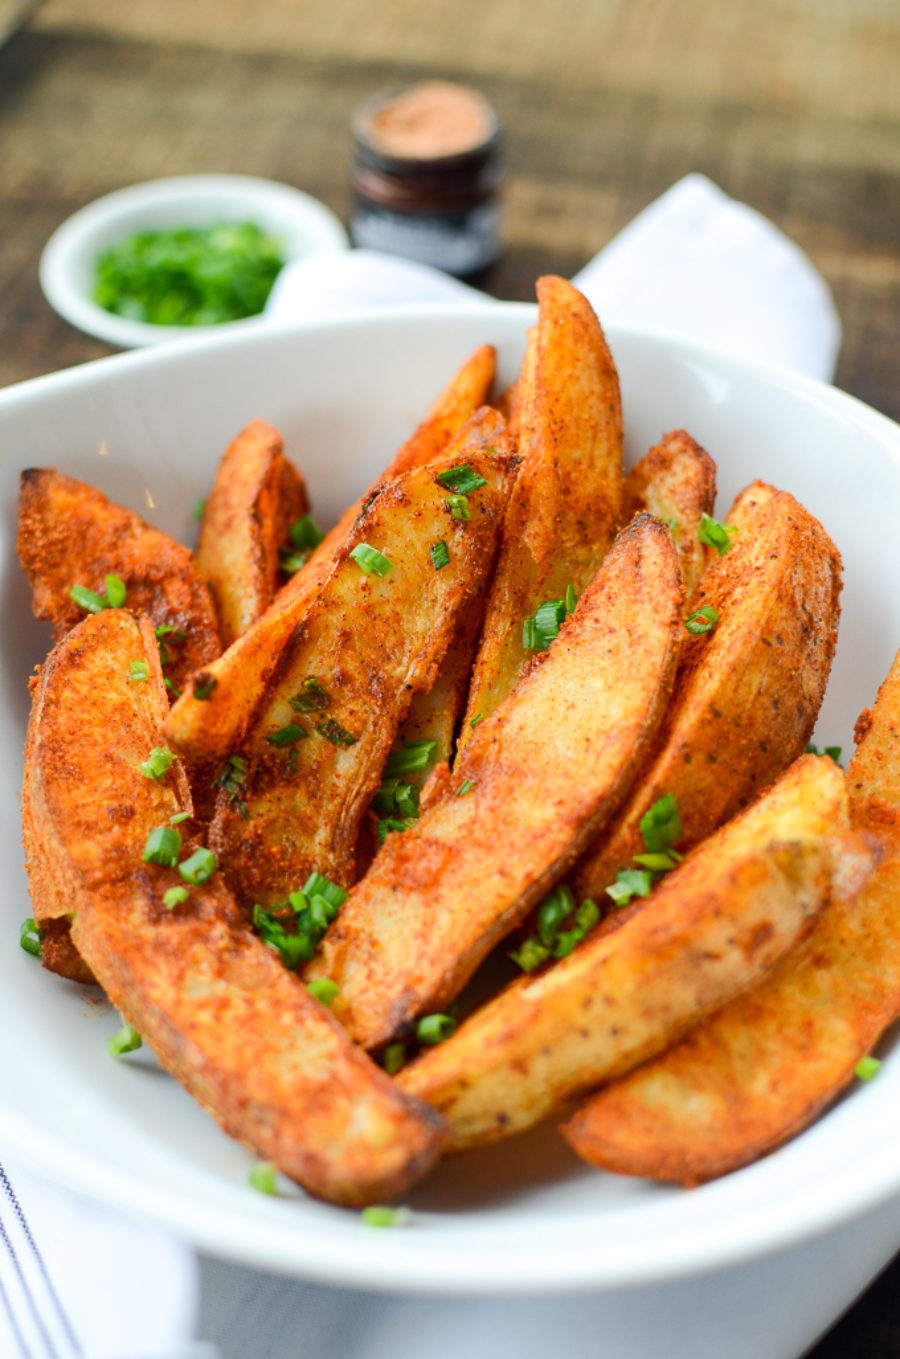 Chili Spiced Potato Wedges